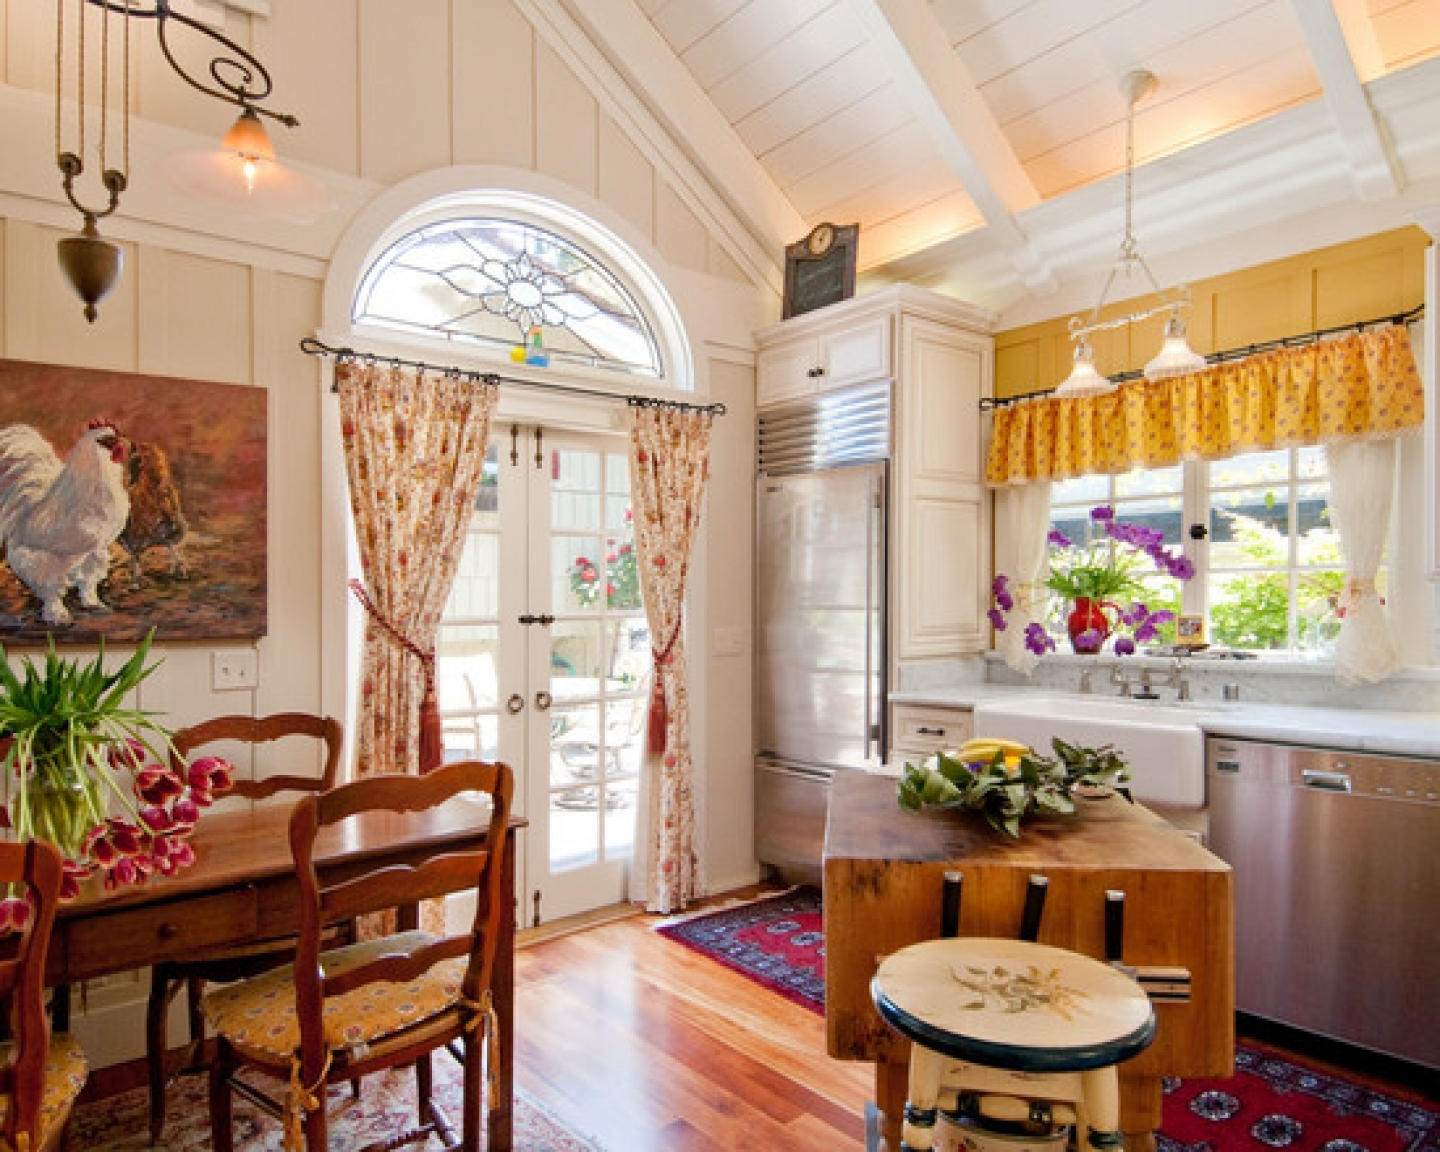 French Country Decorations For Kitchen